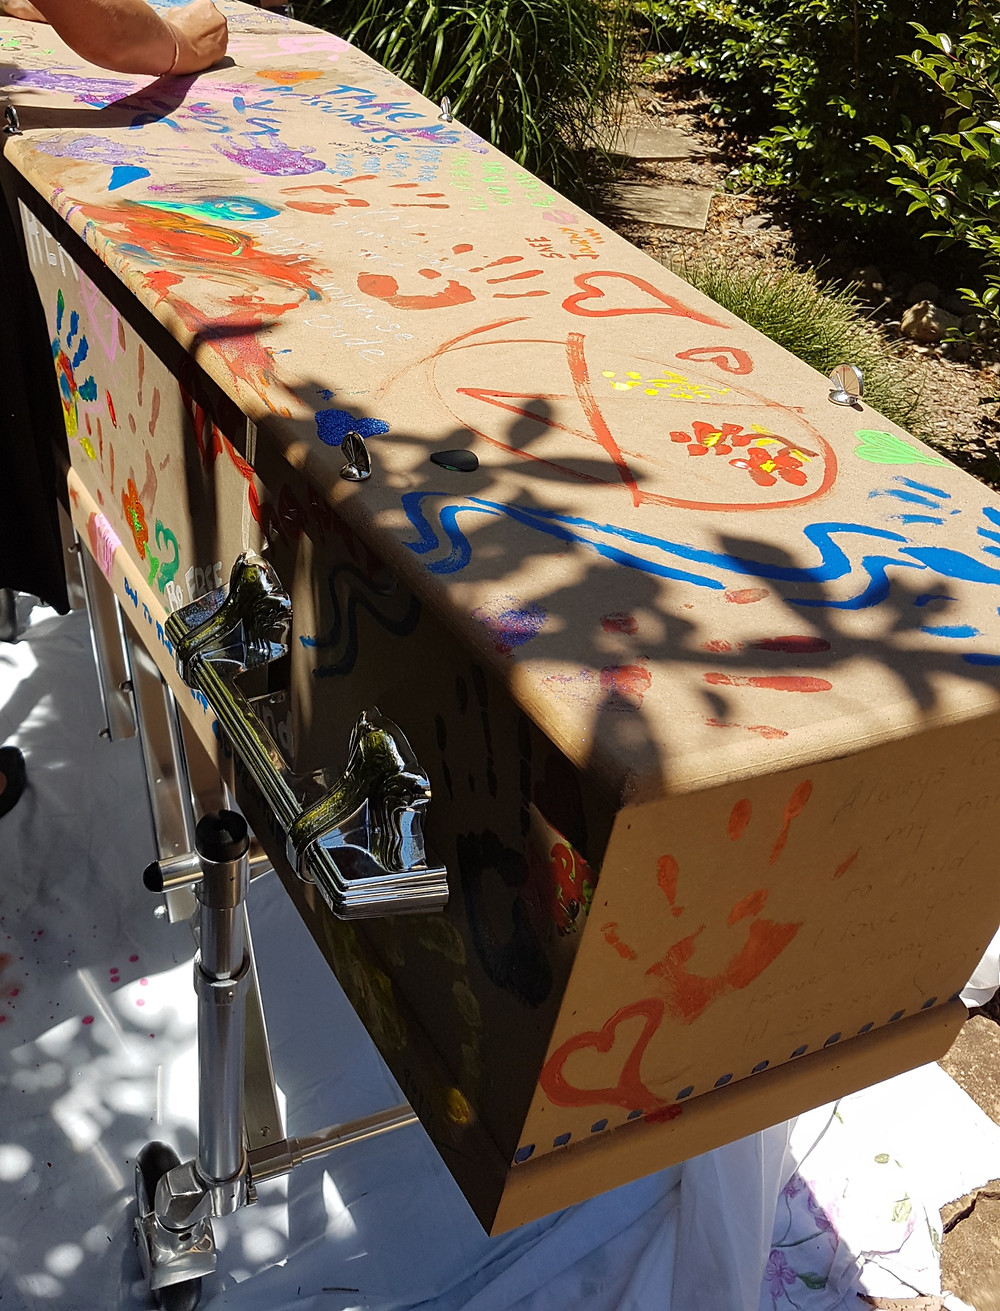 Cardboard coffin being painted.